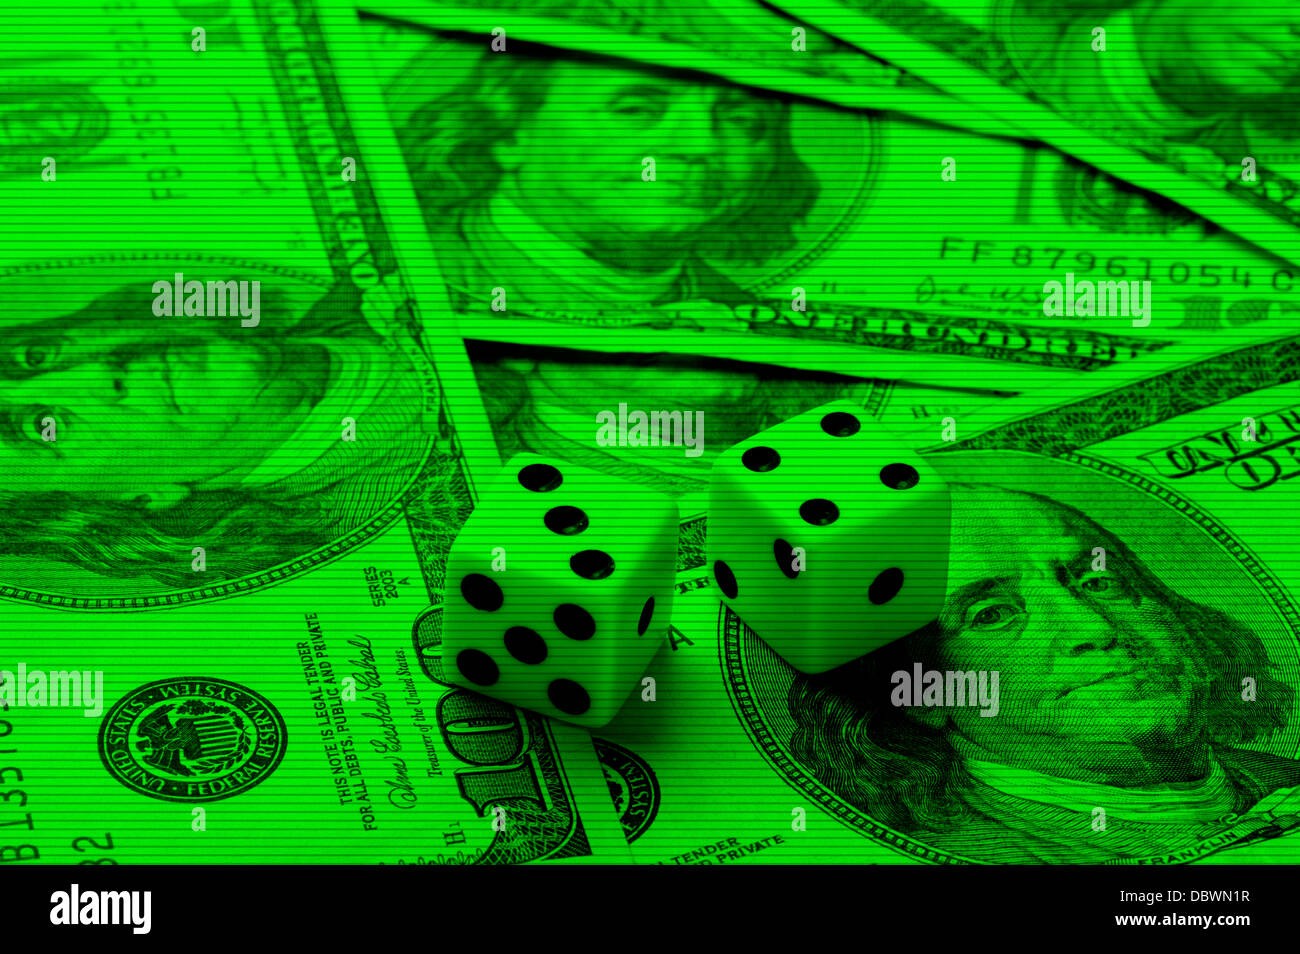 dice on $100 bills night vision camera - Stock Image